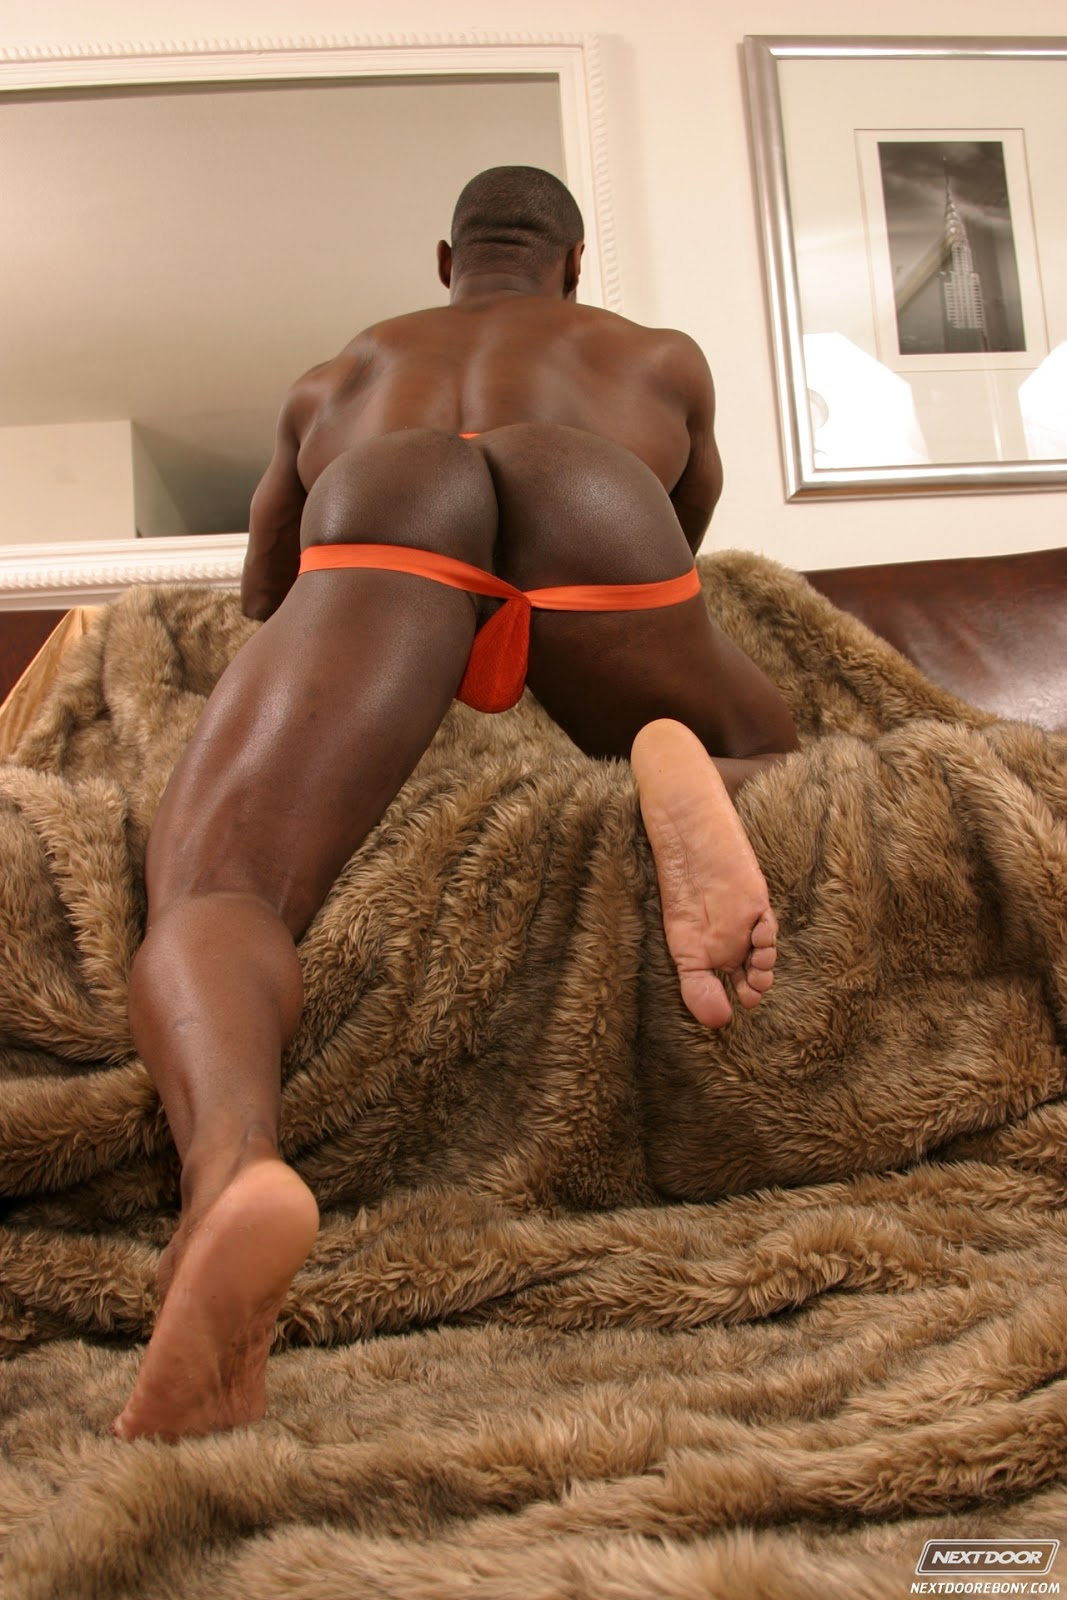 Beautiful big boob ebony natural